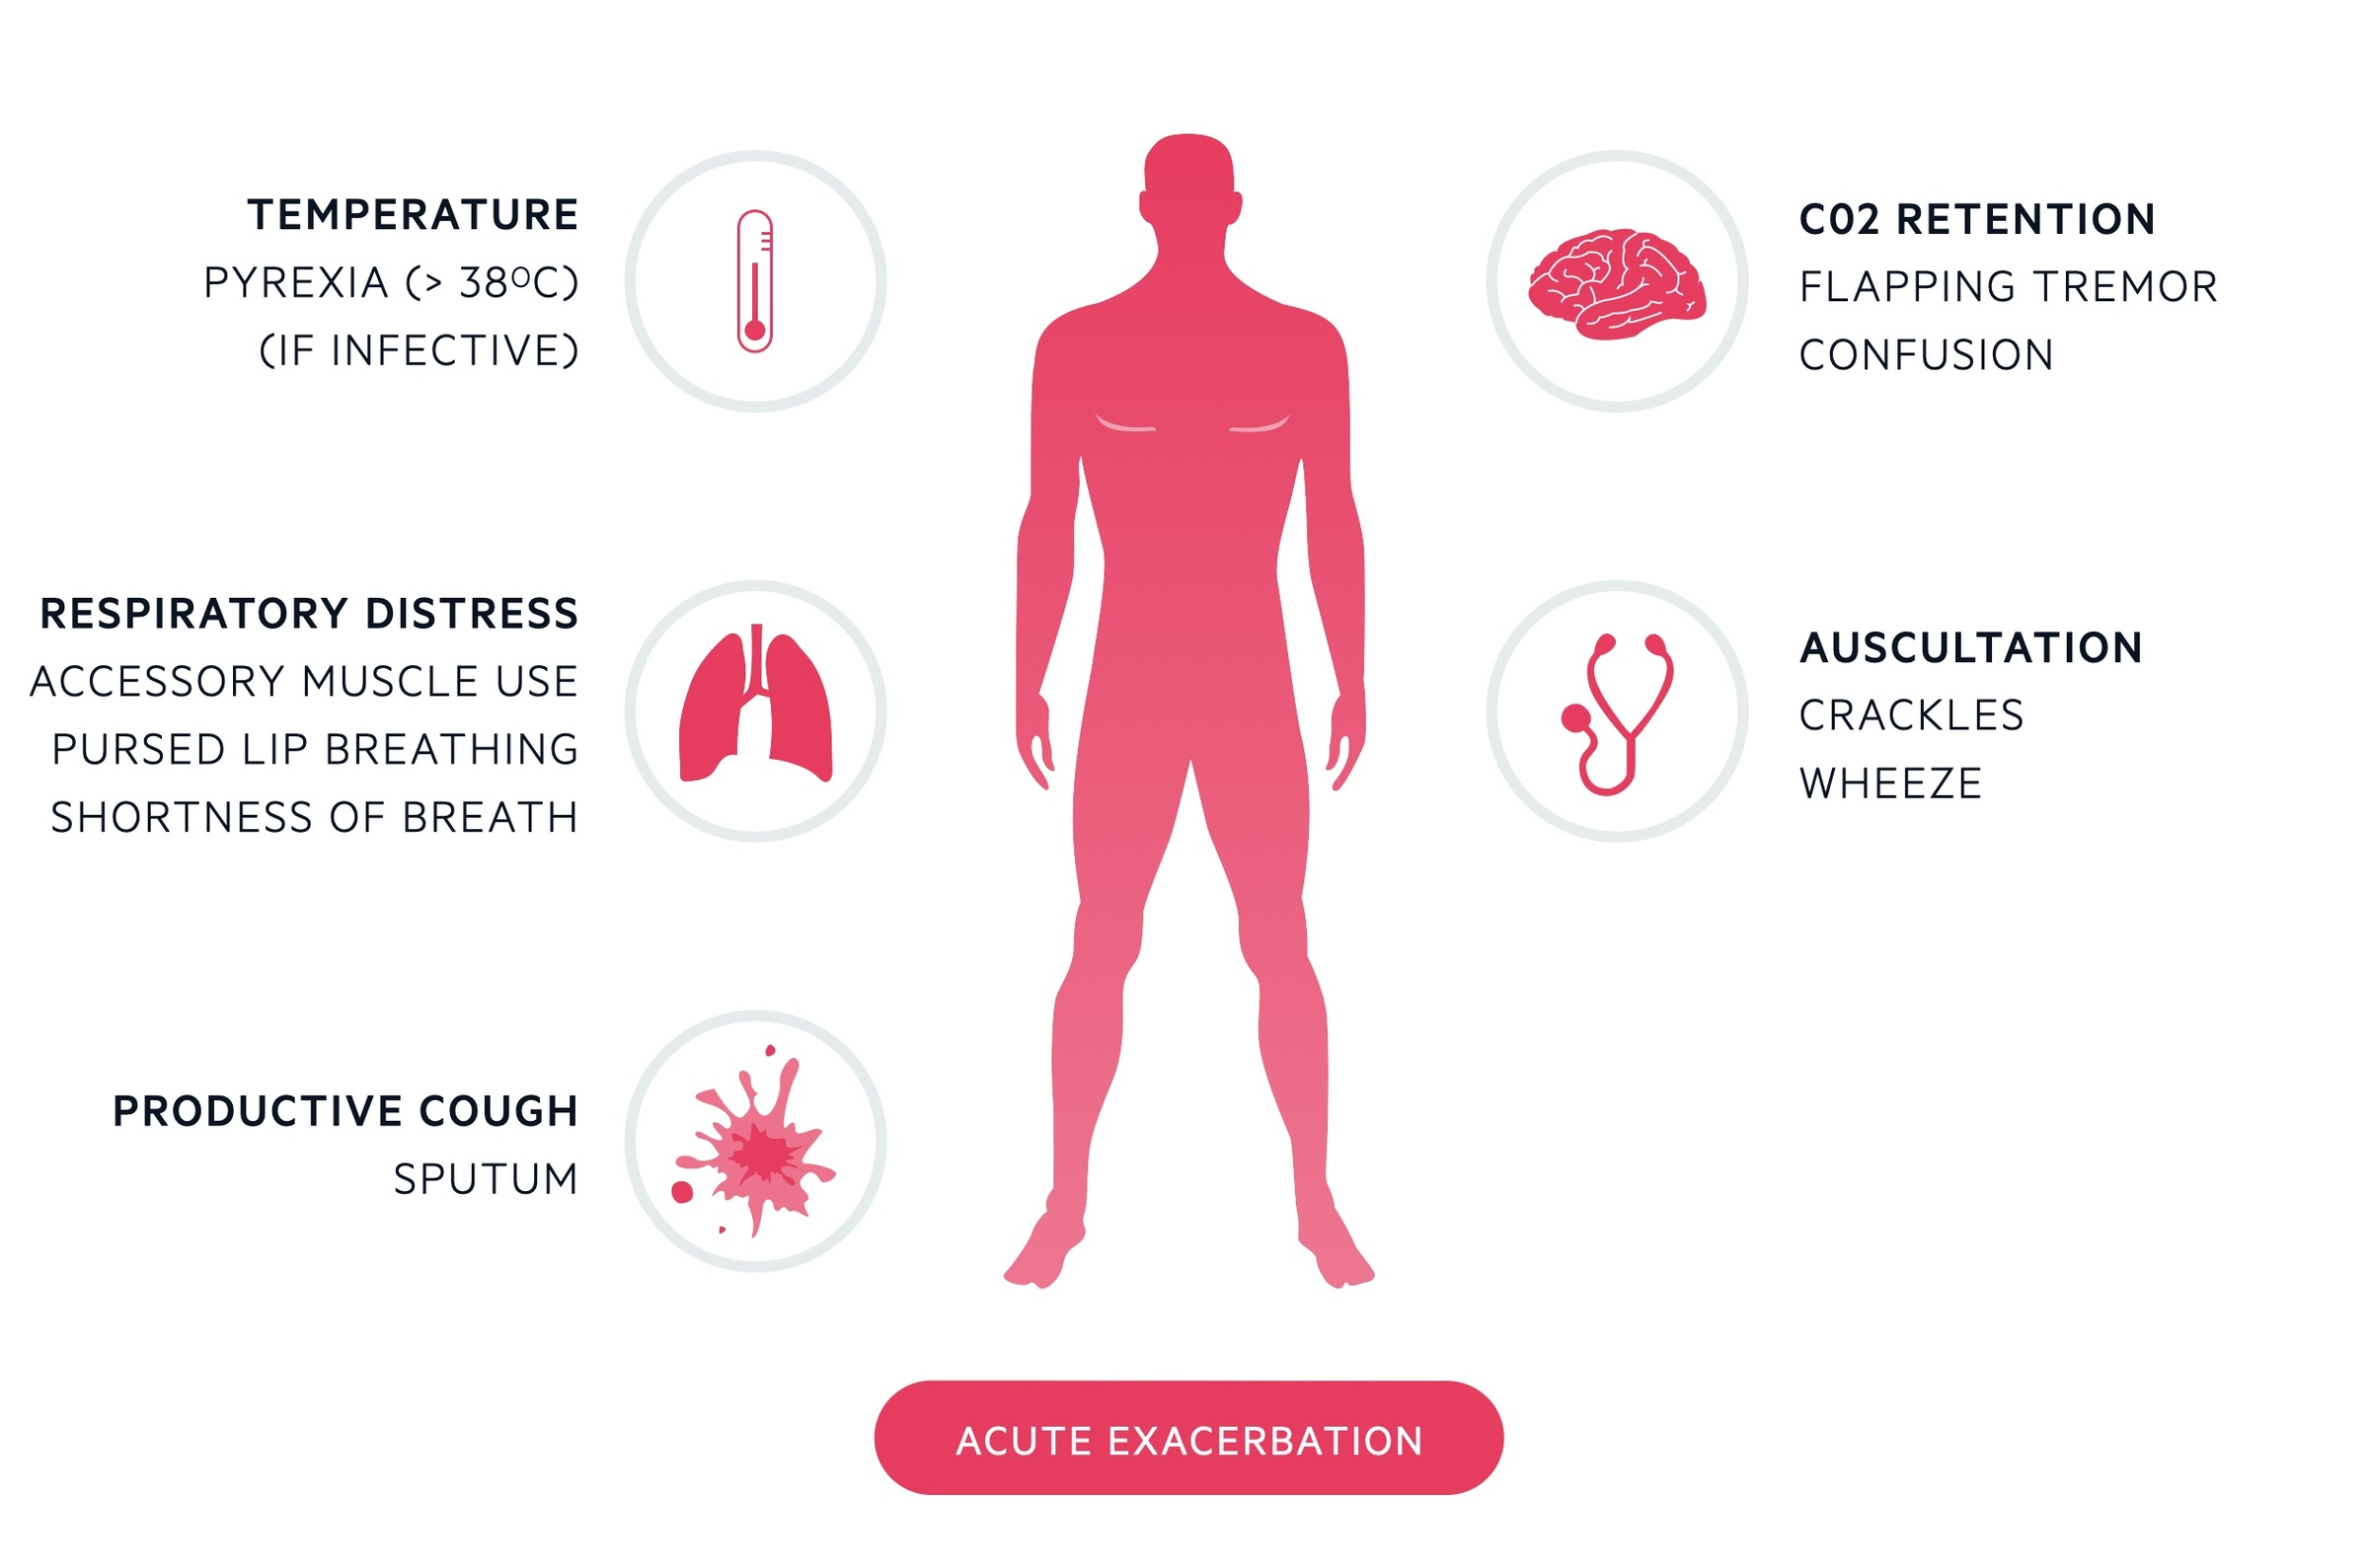 Clinical features of exacerbation of COPD